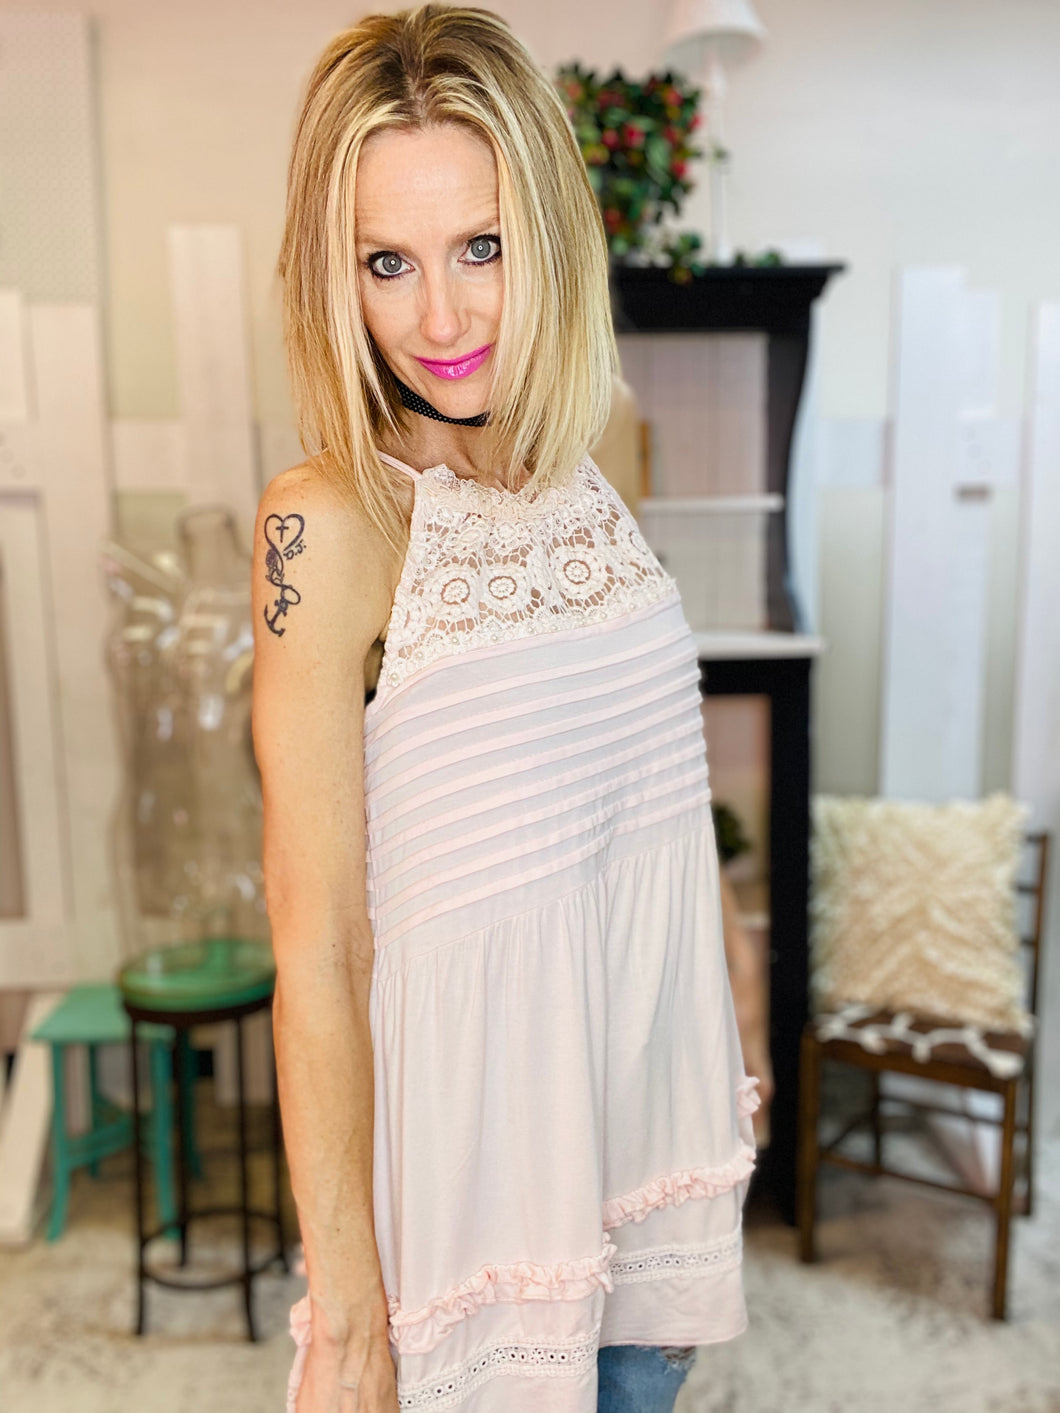 Blush Knit Jersey Lace Cami 3/30/21 7688